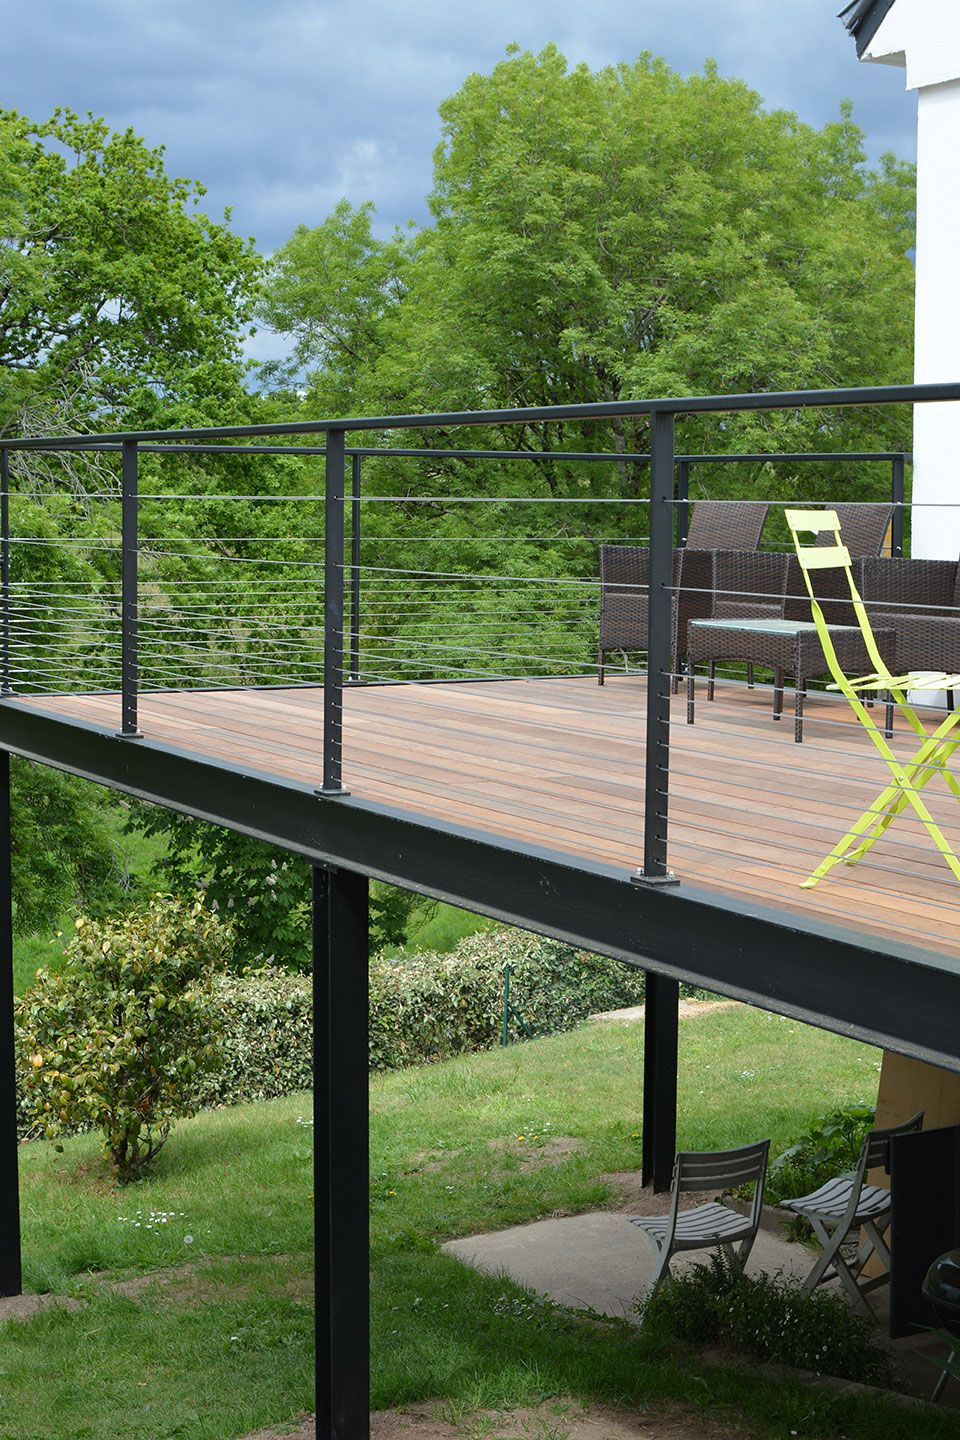 Structure Terrasse Bois Suspendue notable features: (1) steel deck beams and railing allow